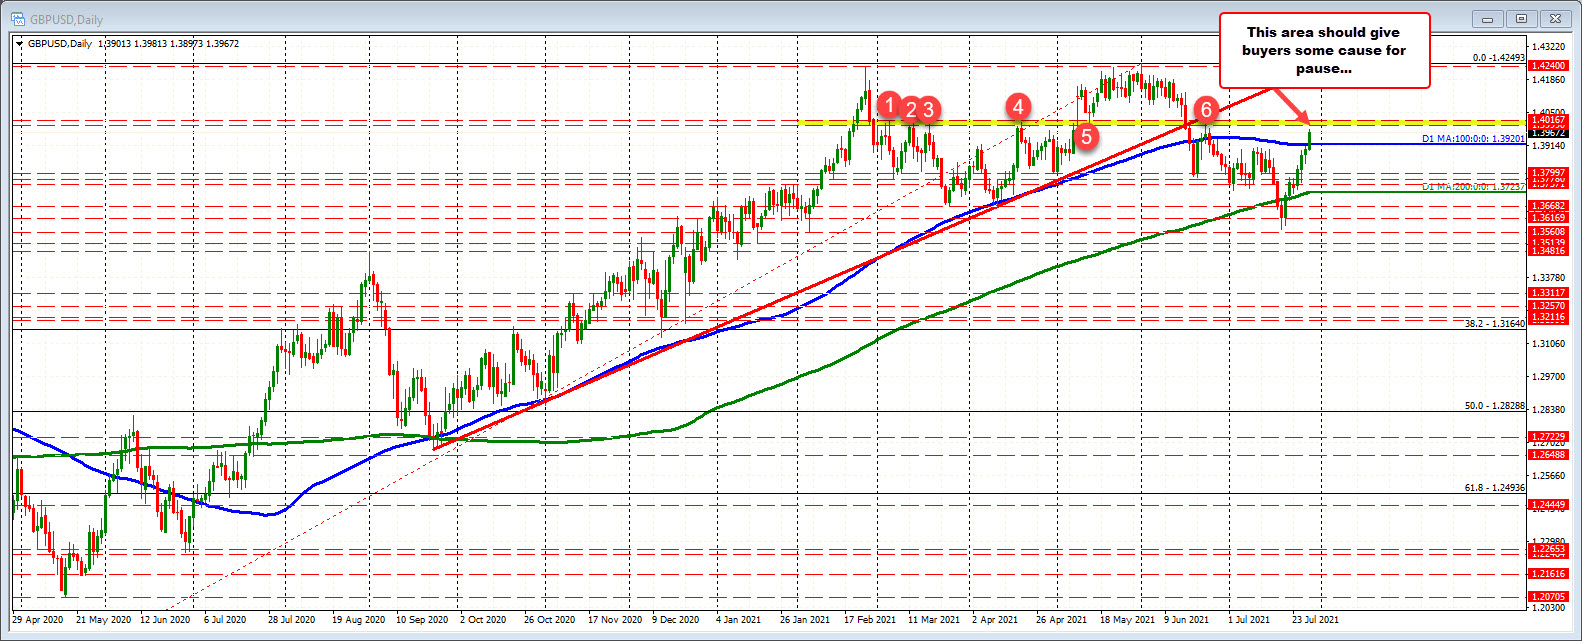 GBPUSD on the daily chart is more bullish above the 100 hour MA